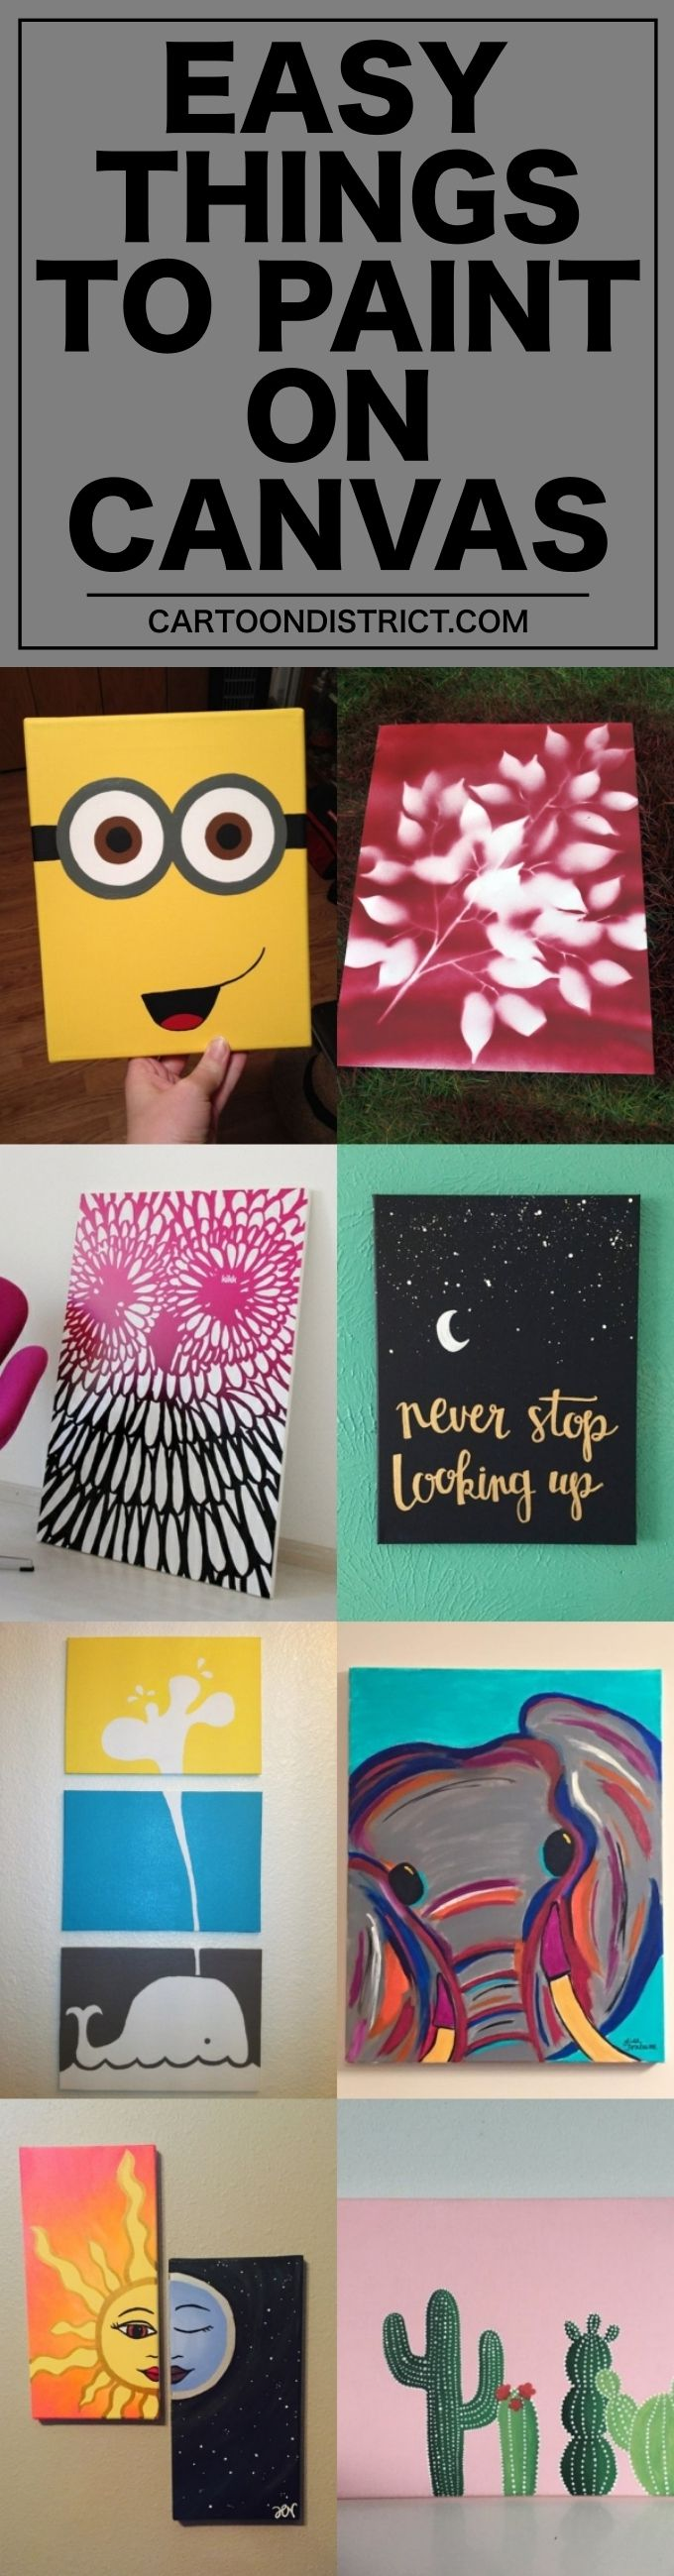 55 Very Easy Things To Paint On Canvas With Images Easy